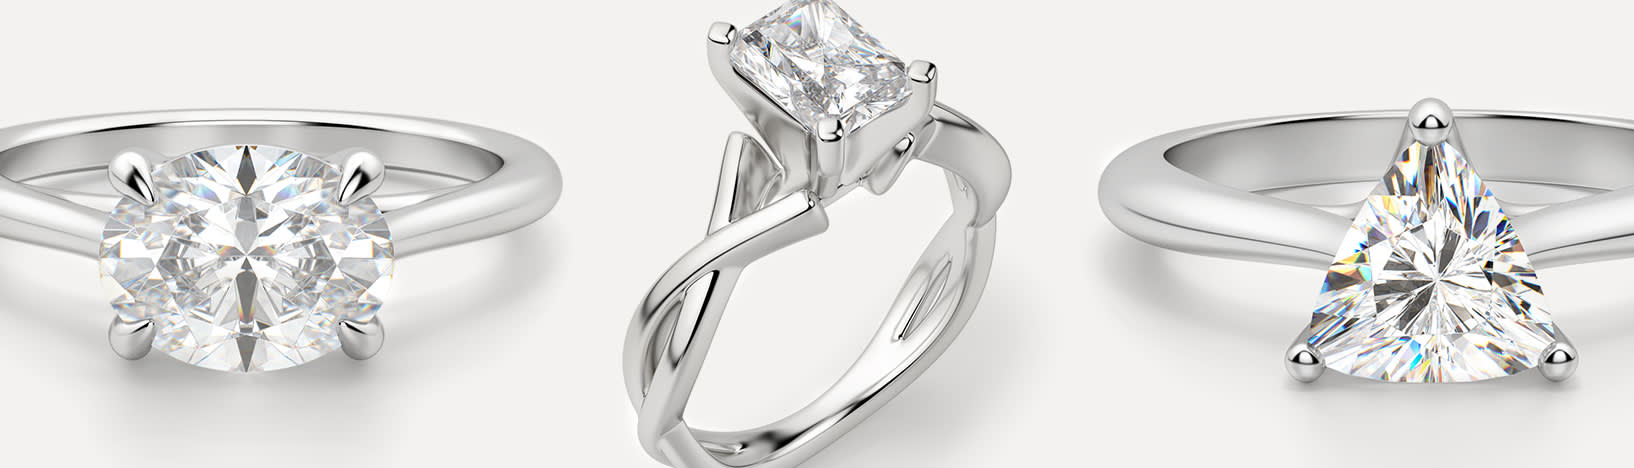 Simulated diamond engagement rings featuring different design elements.